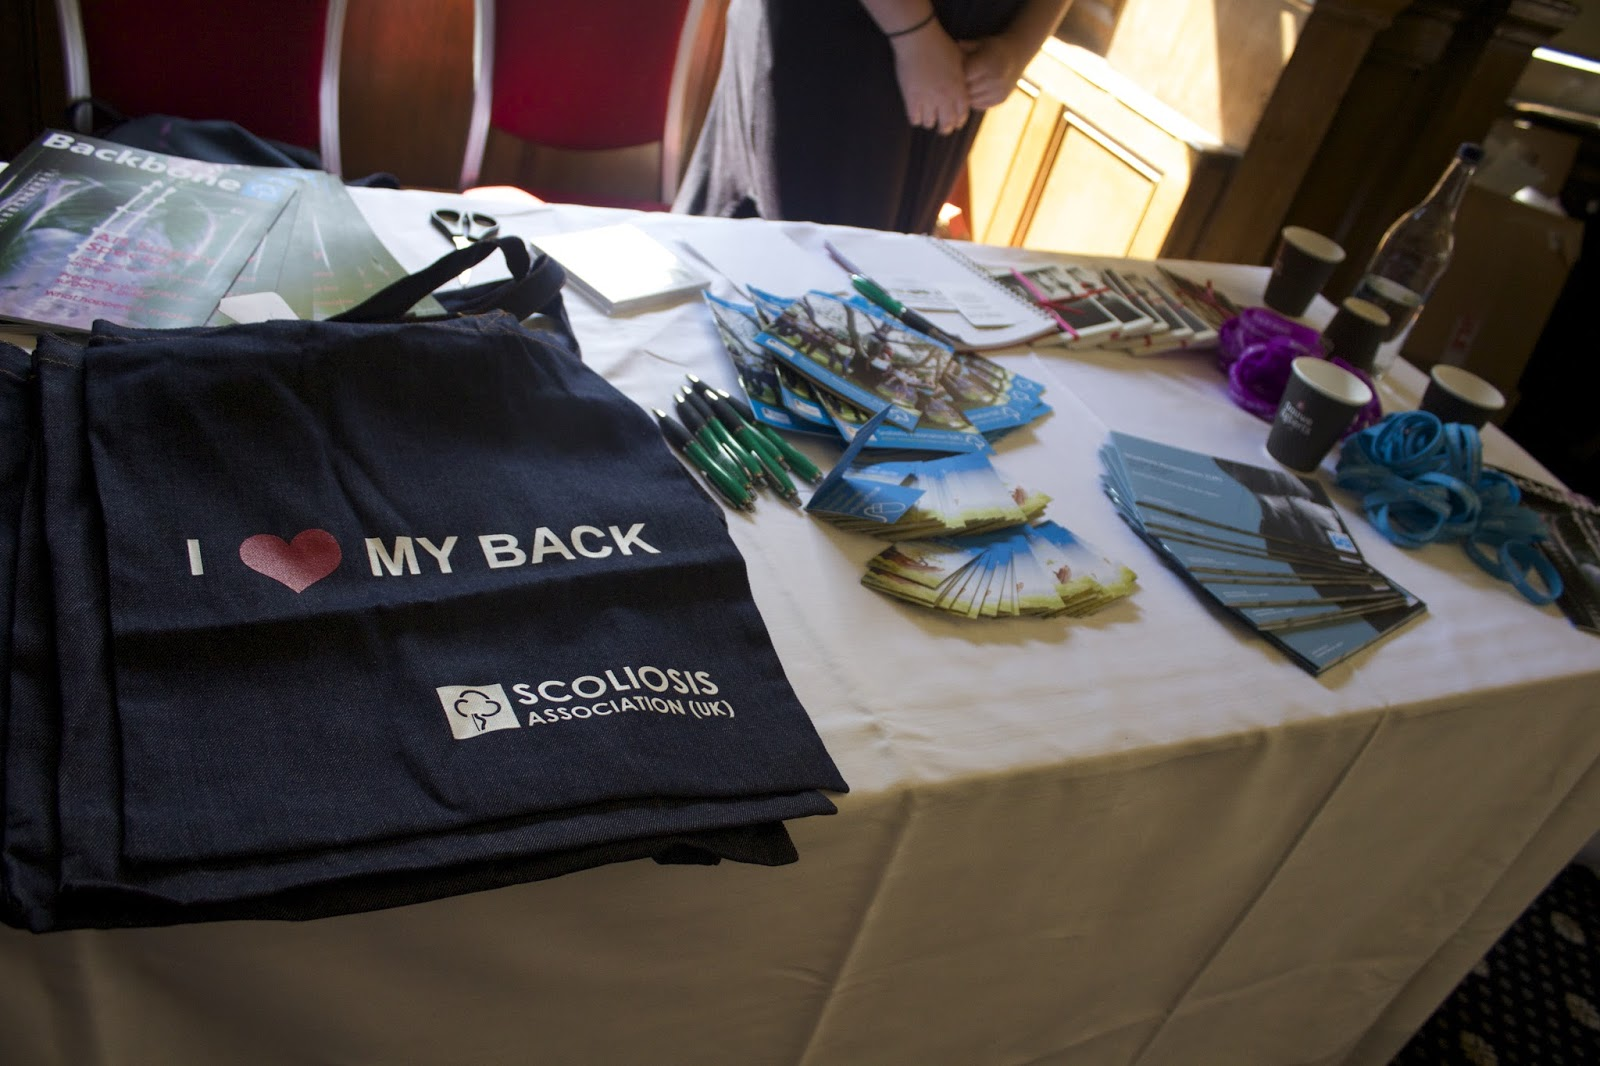 Scoliosis Association at the Big Blogger Conference London